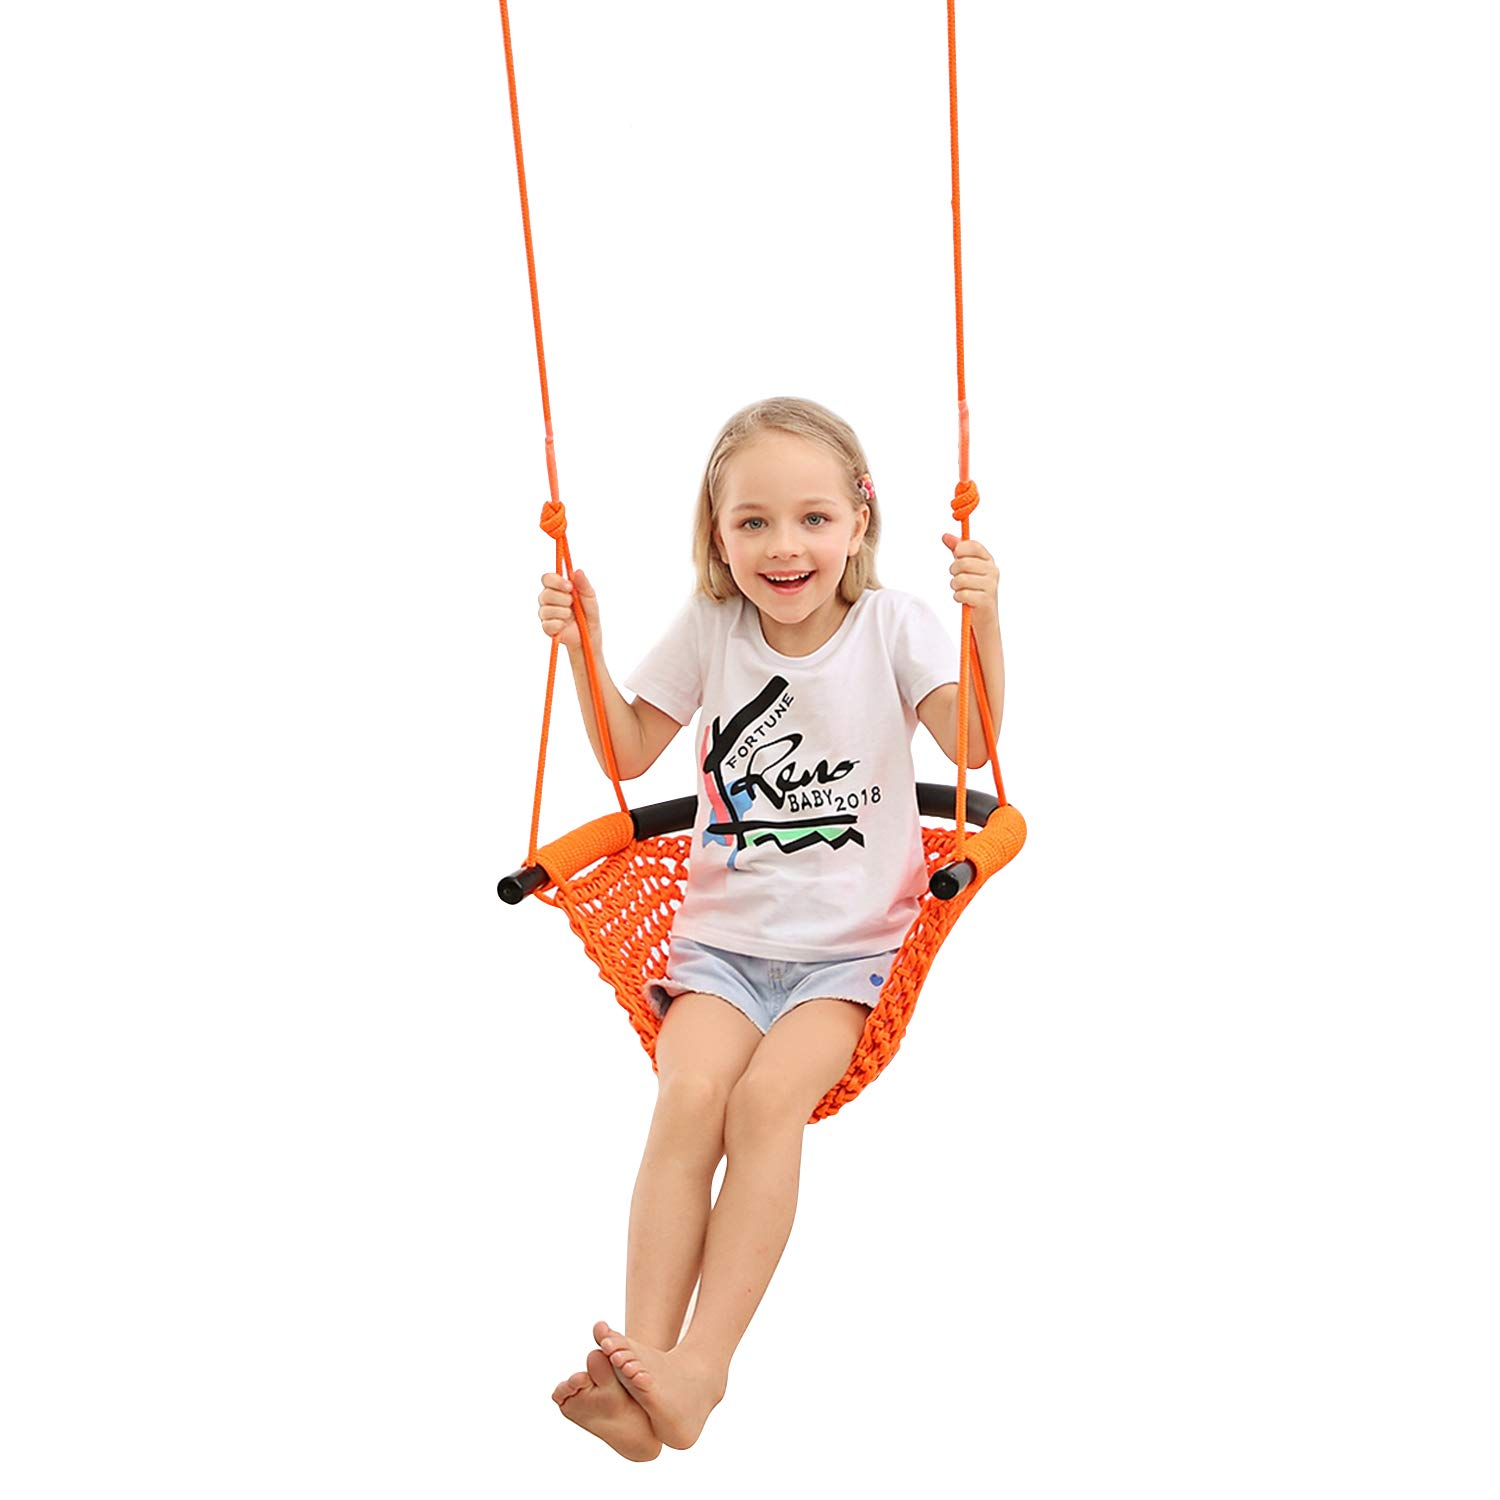 JKsmart Swing Seat for Kids Heavy Duty Rope Play Secure Children Swing Set,Perfect for Indoor,Outdoor,Playground,Home,Tree,with Snap Hooks and Swing Straps,440 lbs Capacity,Orange(Patent Pending)